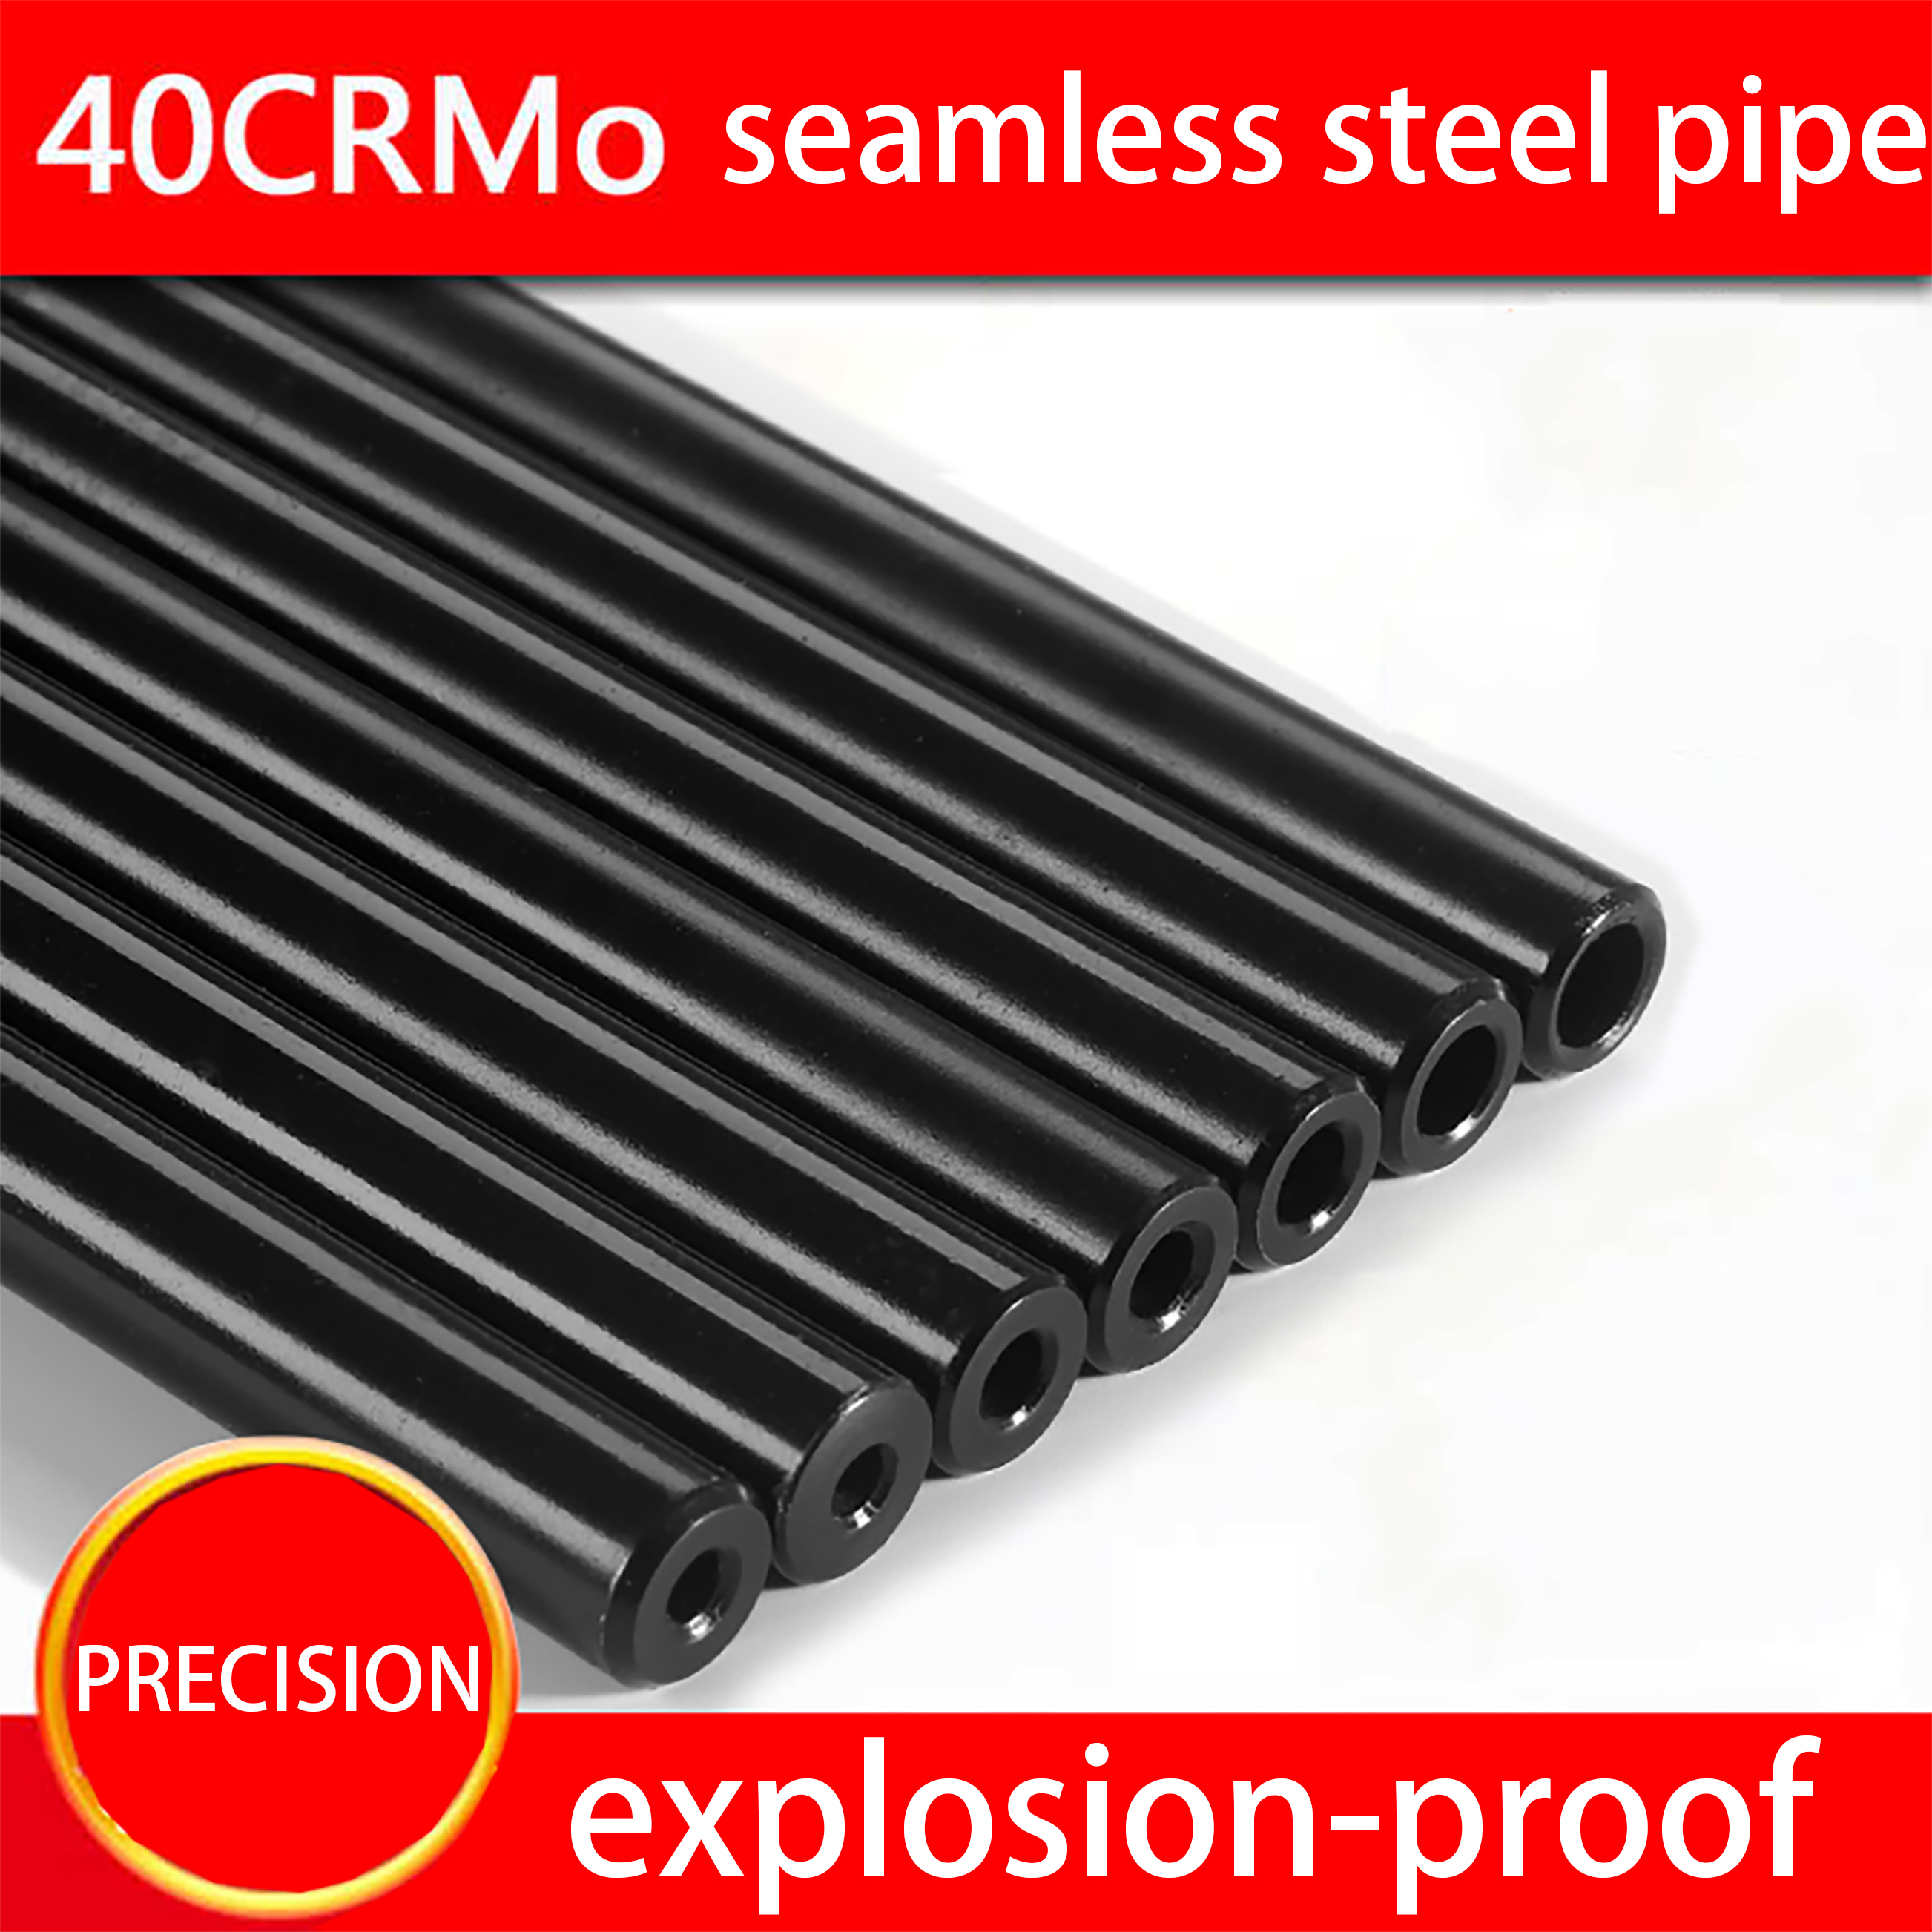 12mm O/D Seamless Steel Pipe Hydraulic Alloy Precision Steel Tubes  Explosion-proof Tool Part Print Black